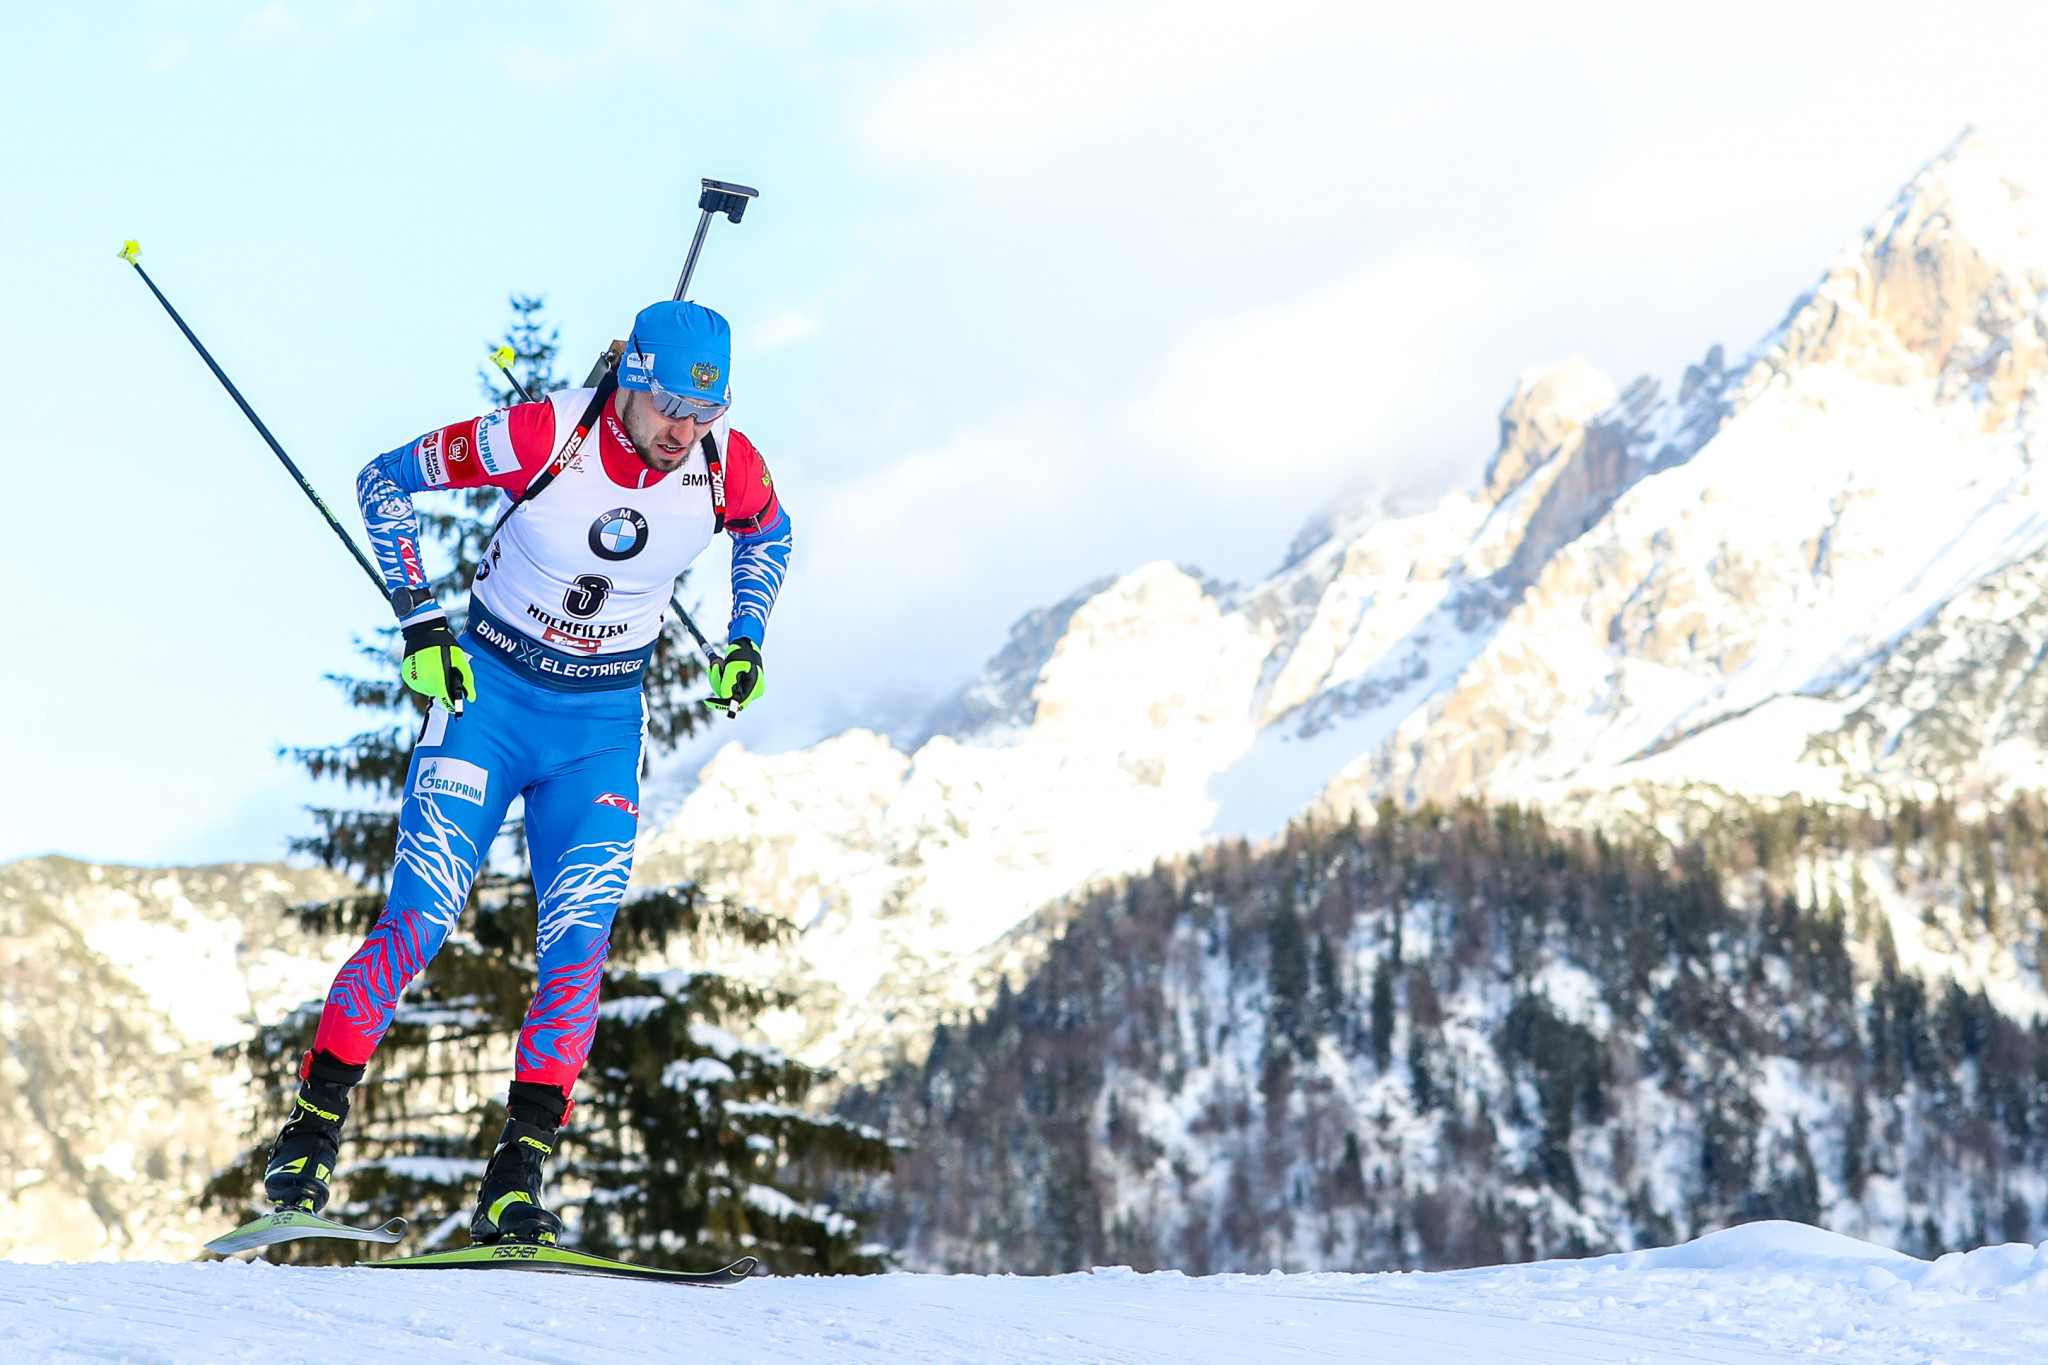 Russian Biathlon Union hopeful athletes can compete under own flag at World Championships